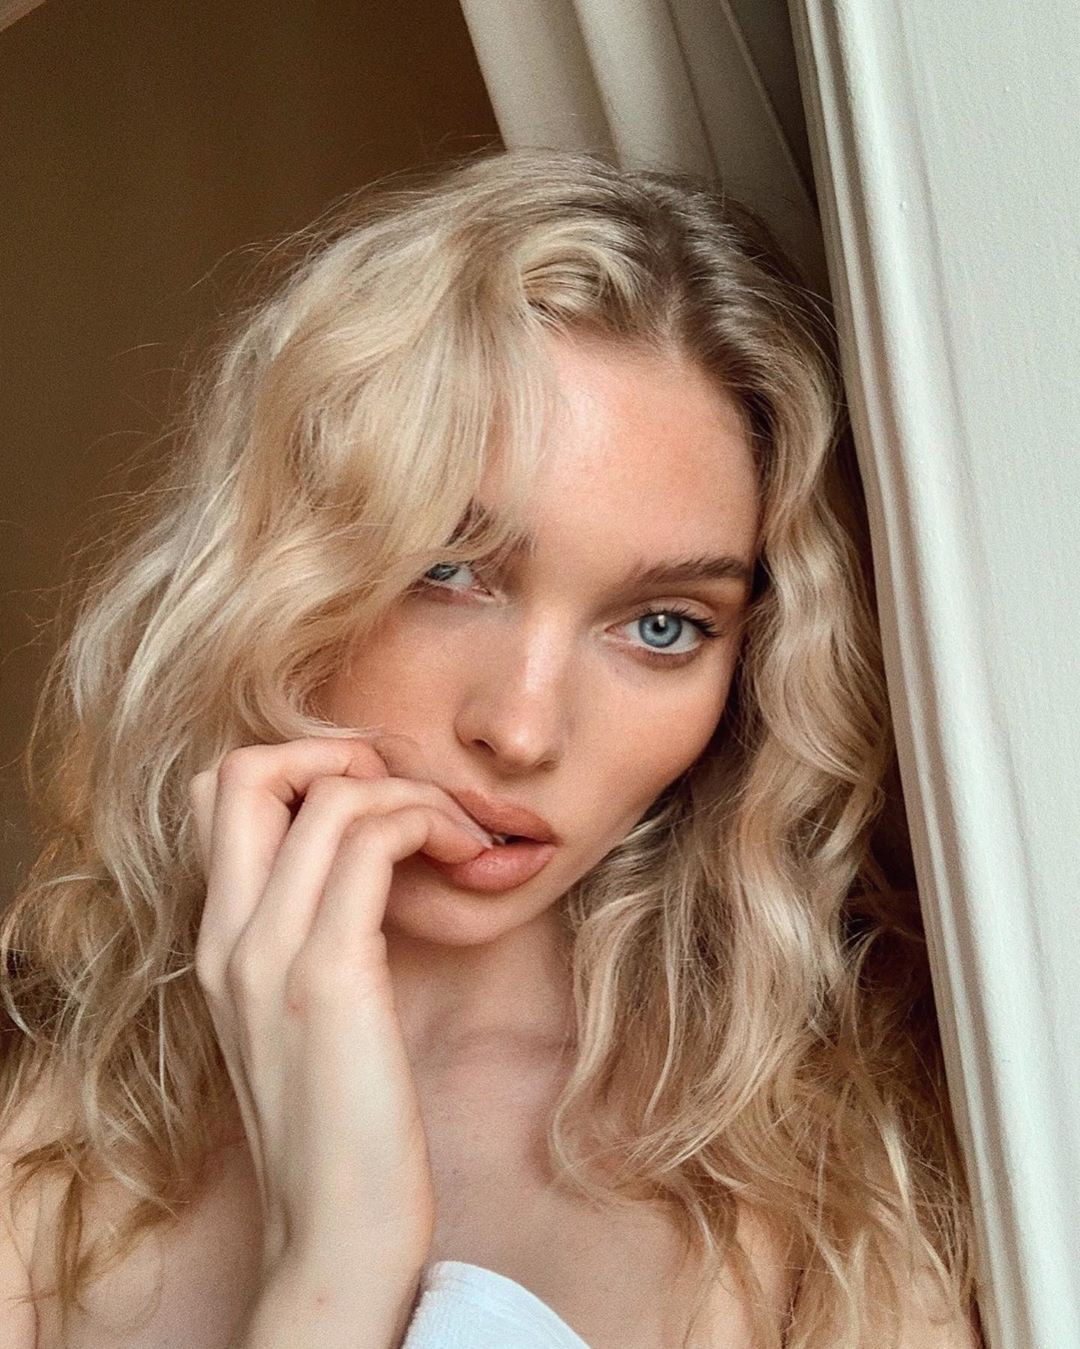 Elsa Hosk in blond hairs, Girls With Cute Face, Lips Smile